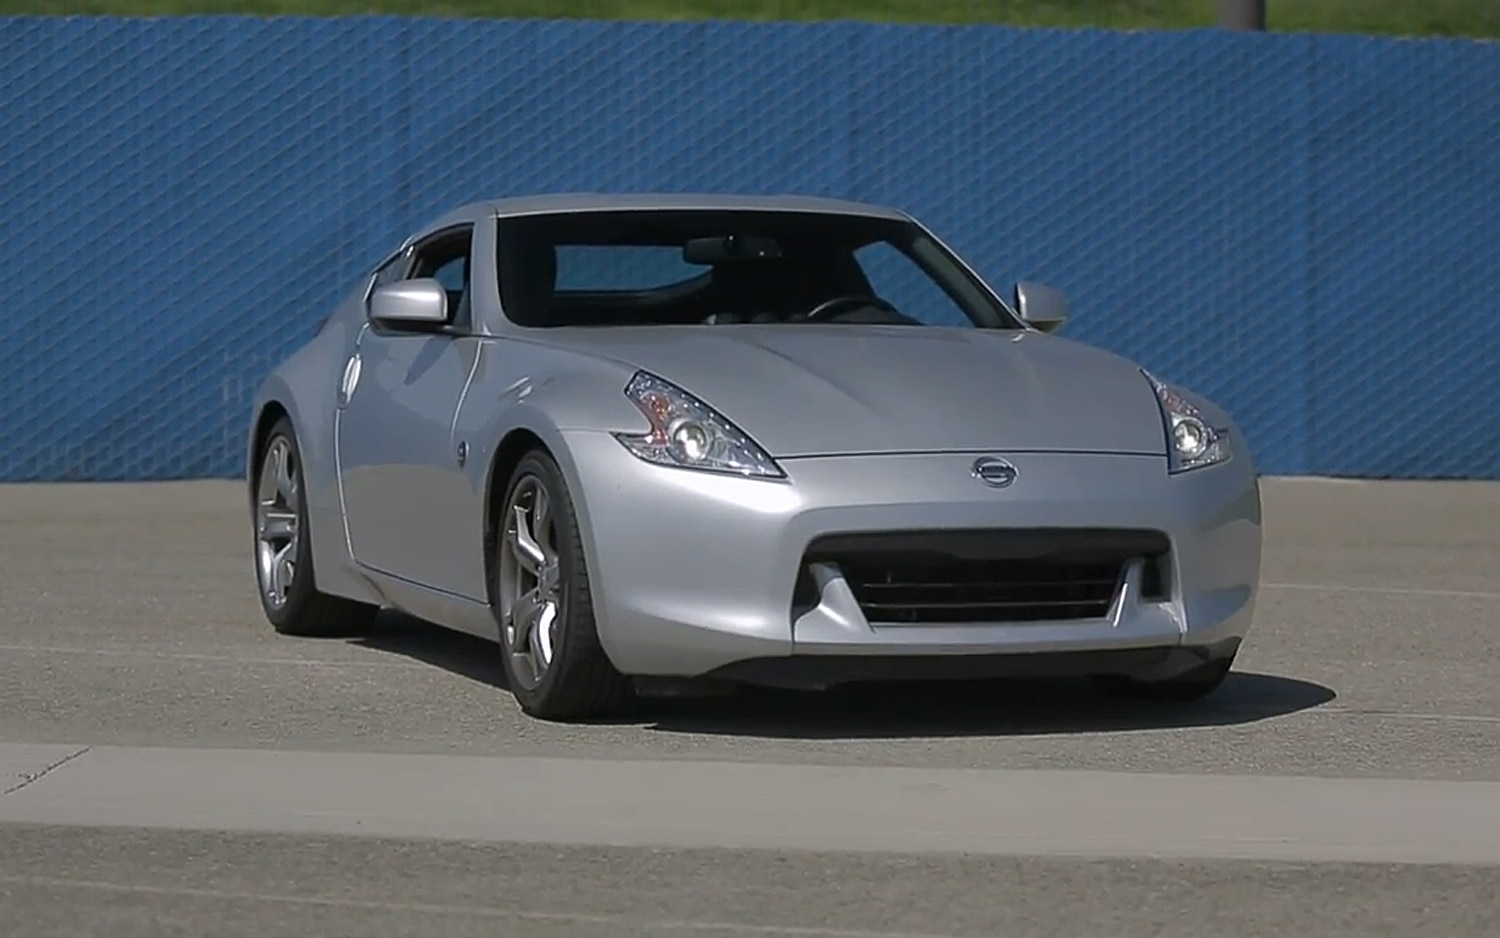 feature flick: the 2012 nissan 370z is rough and rewarding